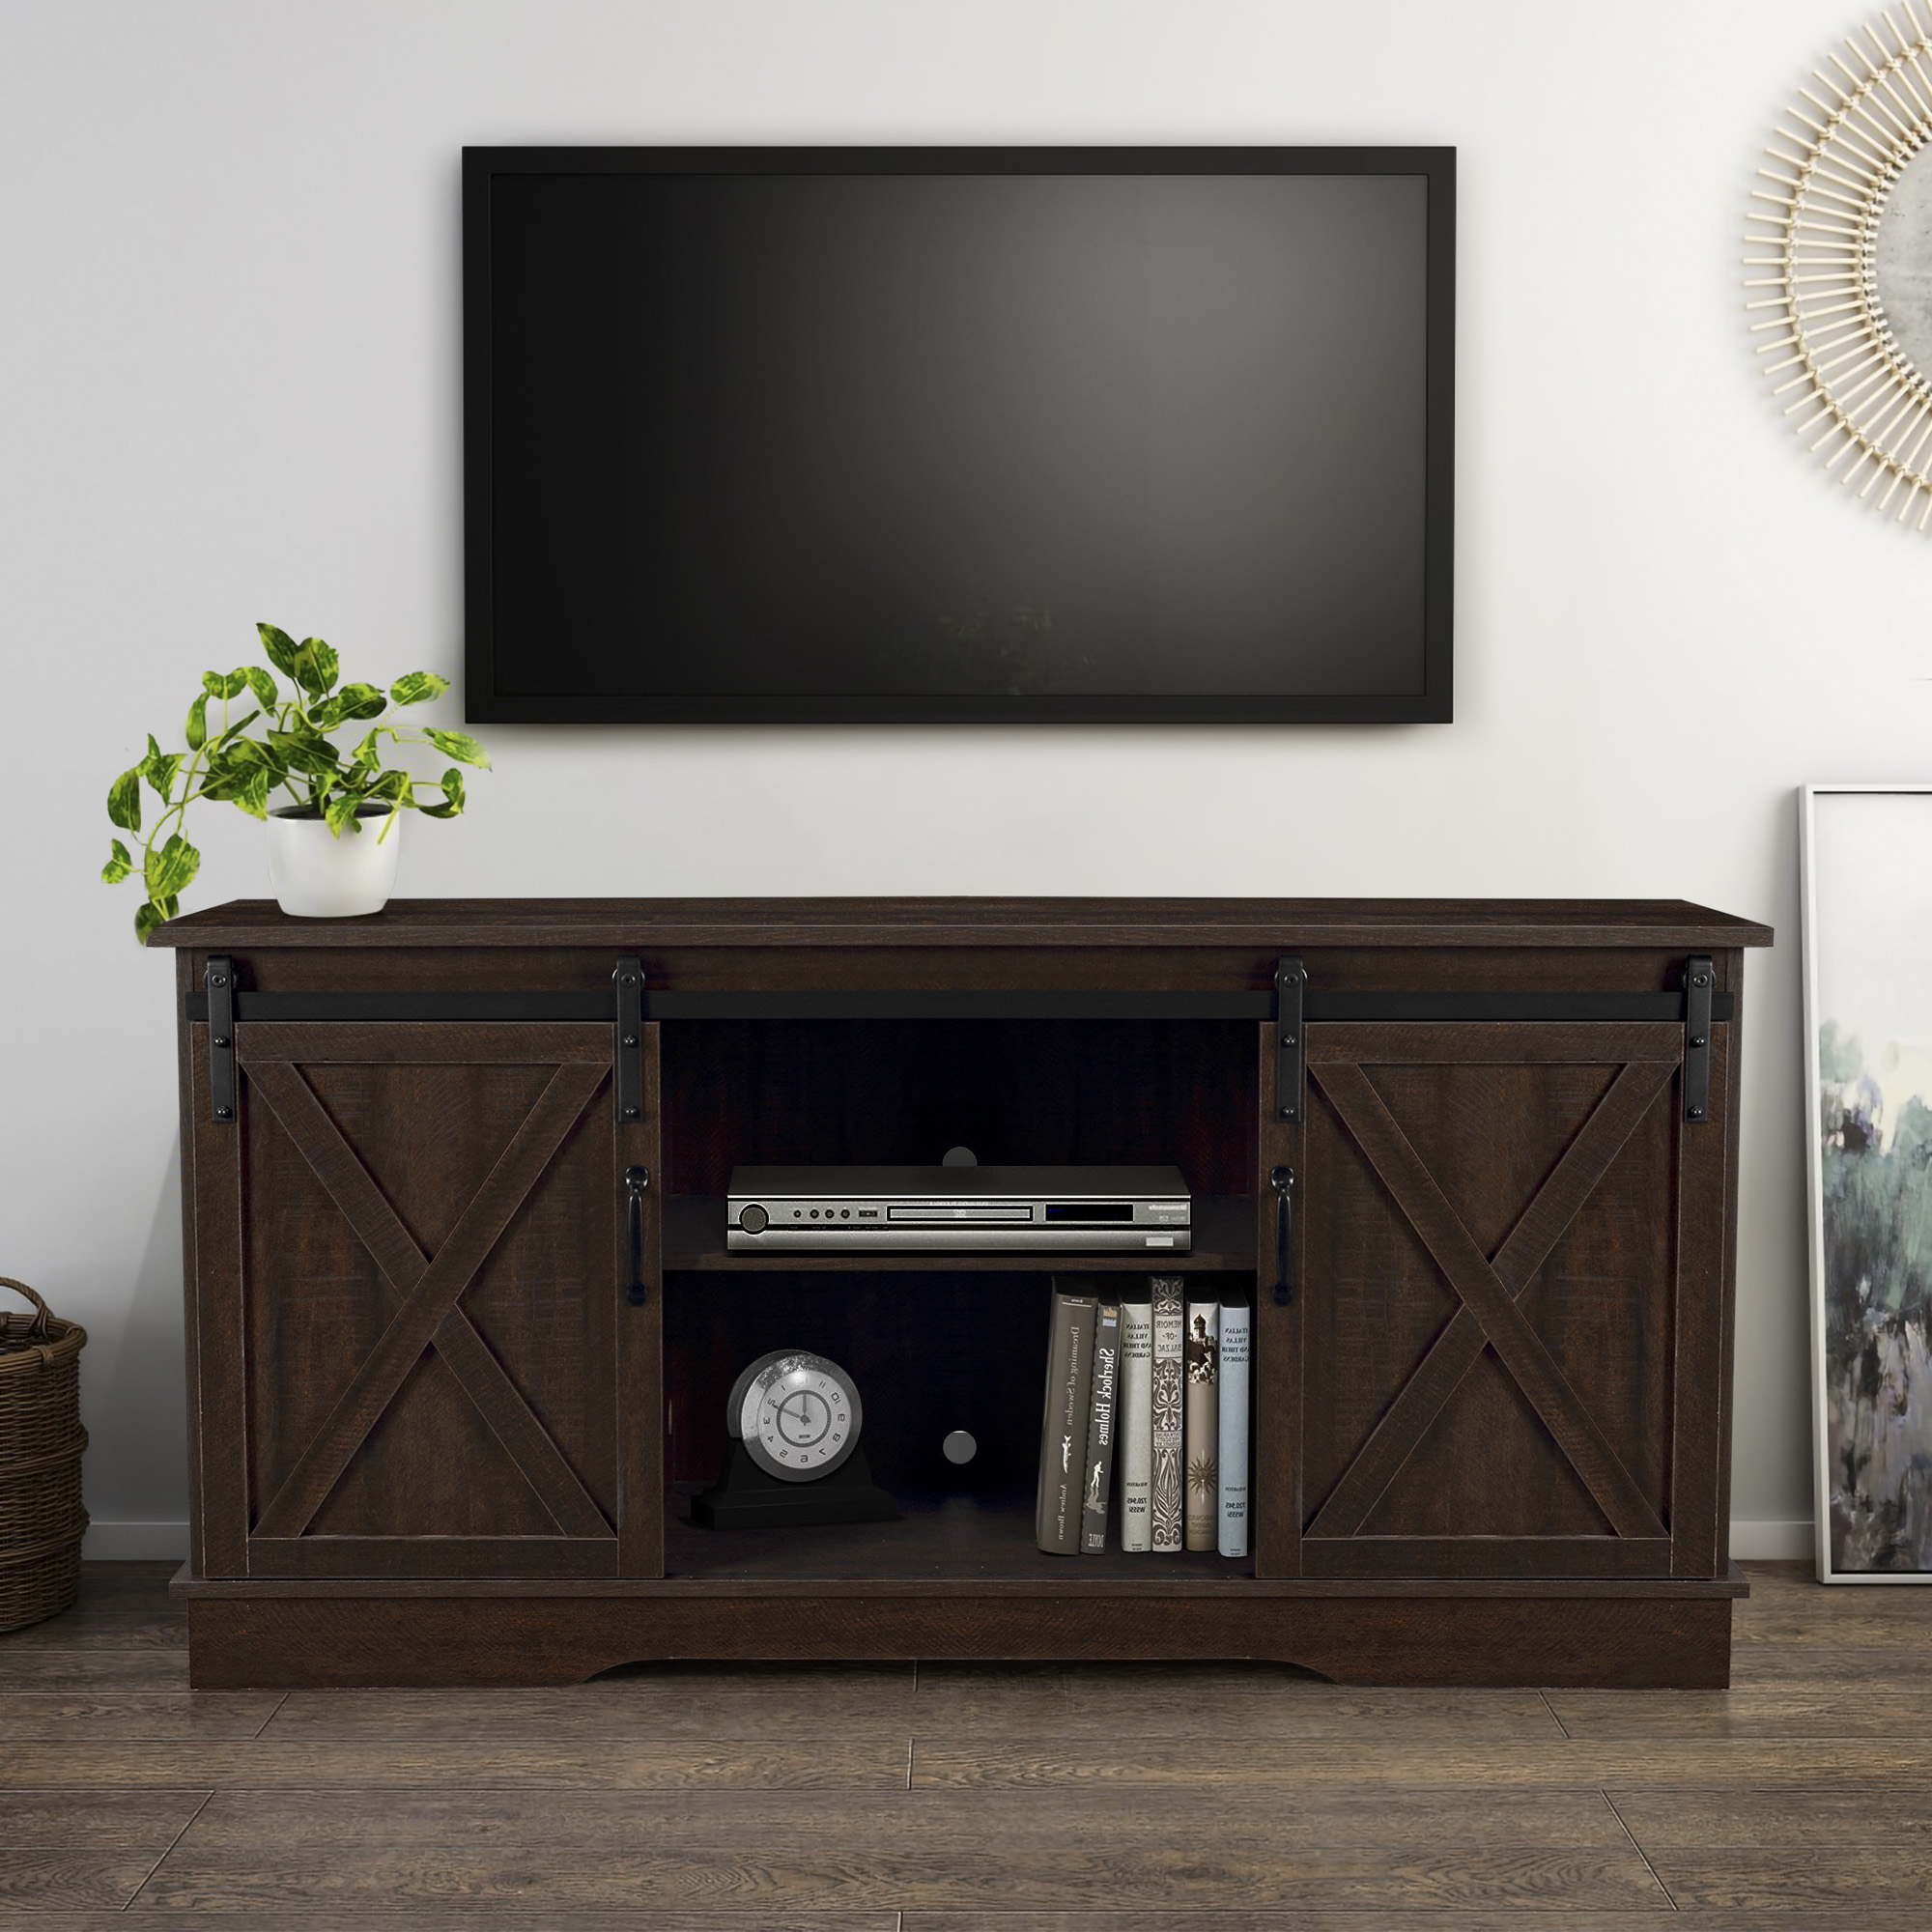 Modern Black Tabletop Tv Stands Within Most Popular Belleze Modern Farmhouse Style 58 Inch Tv Stand With (View 7 of 10)